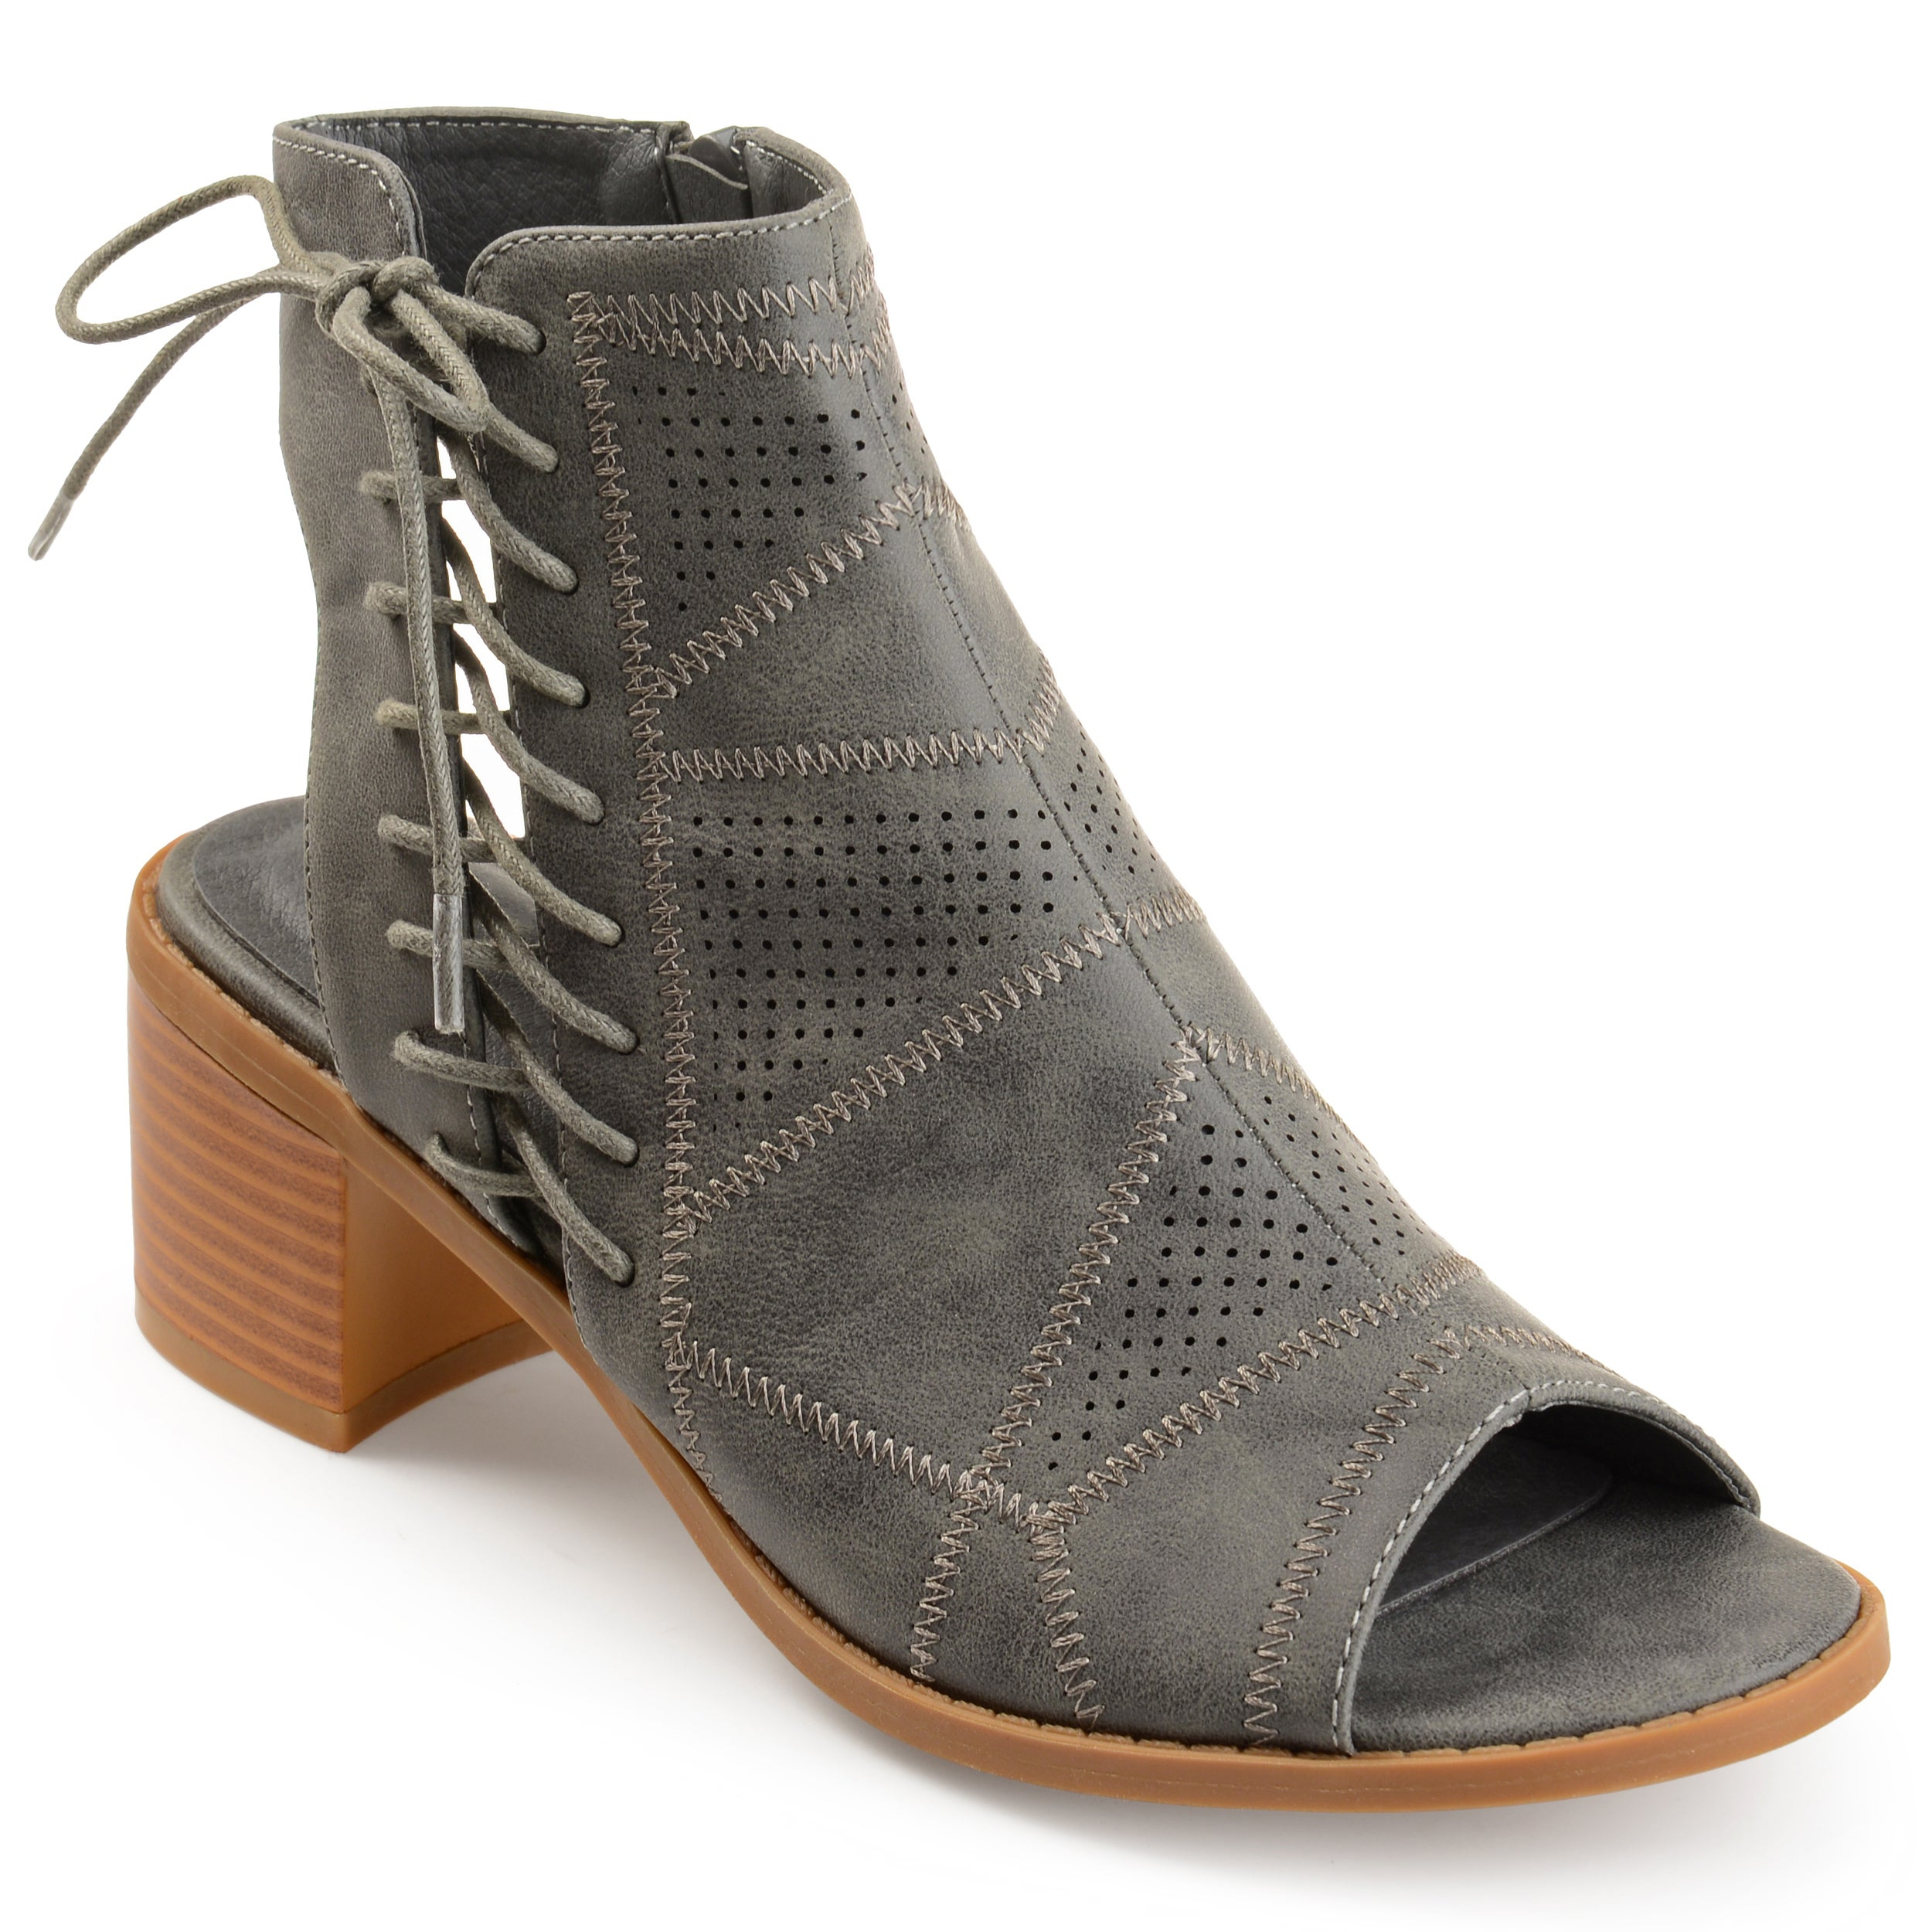 Journee Collection Elexy ... Women's Ankle Boots limited edition for sale 22VrnJgjx